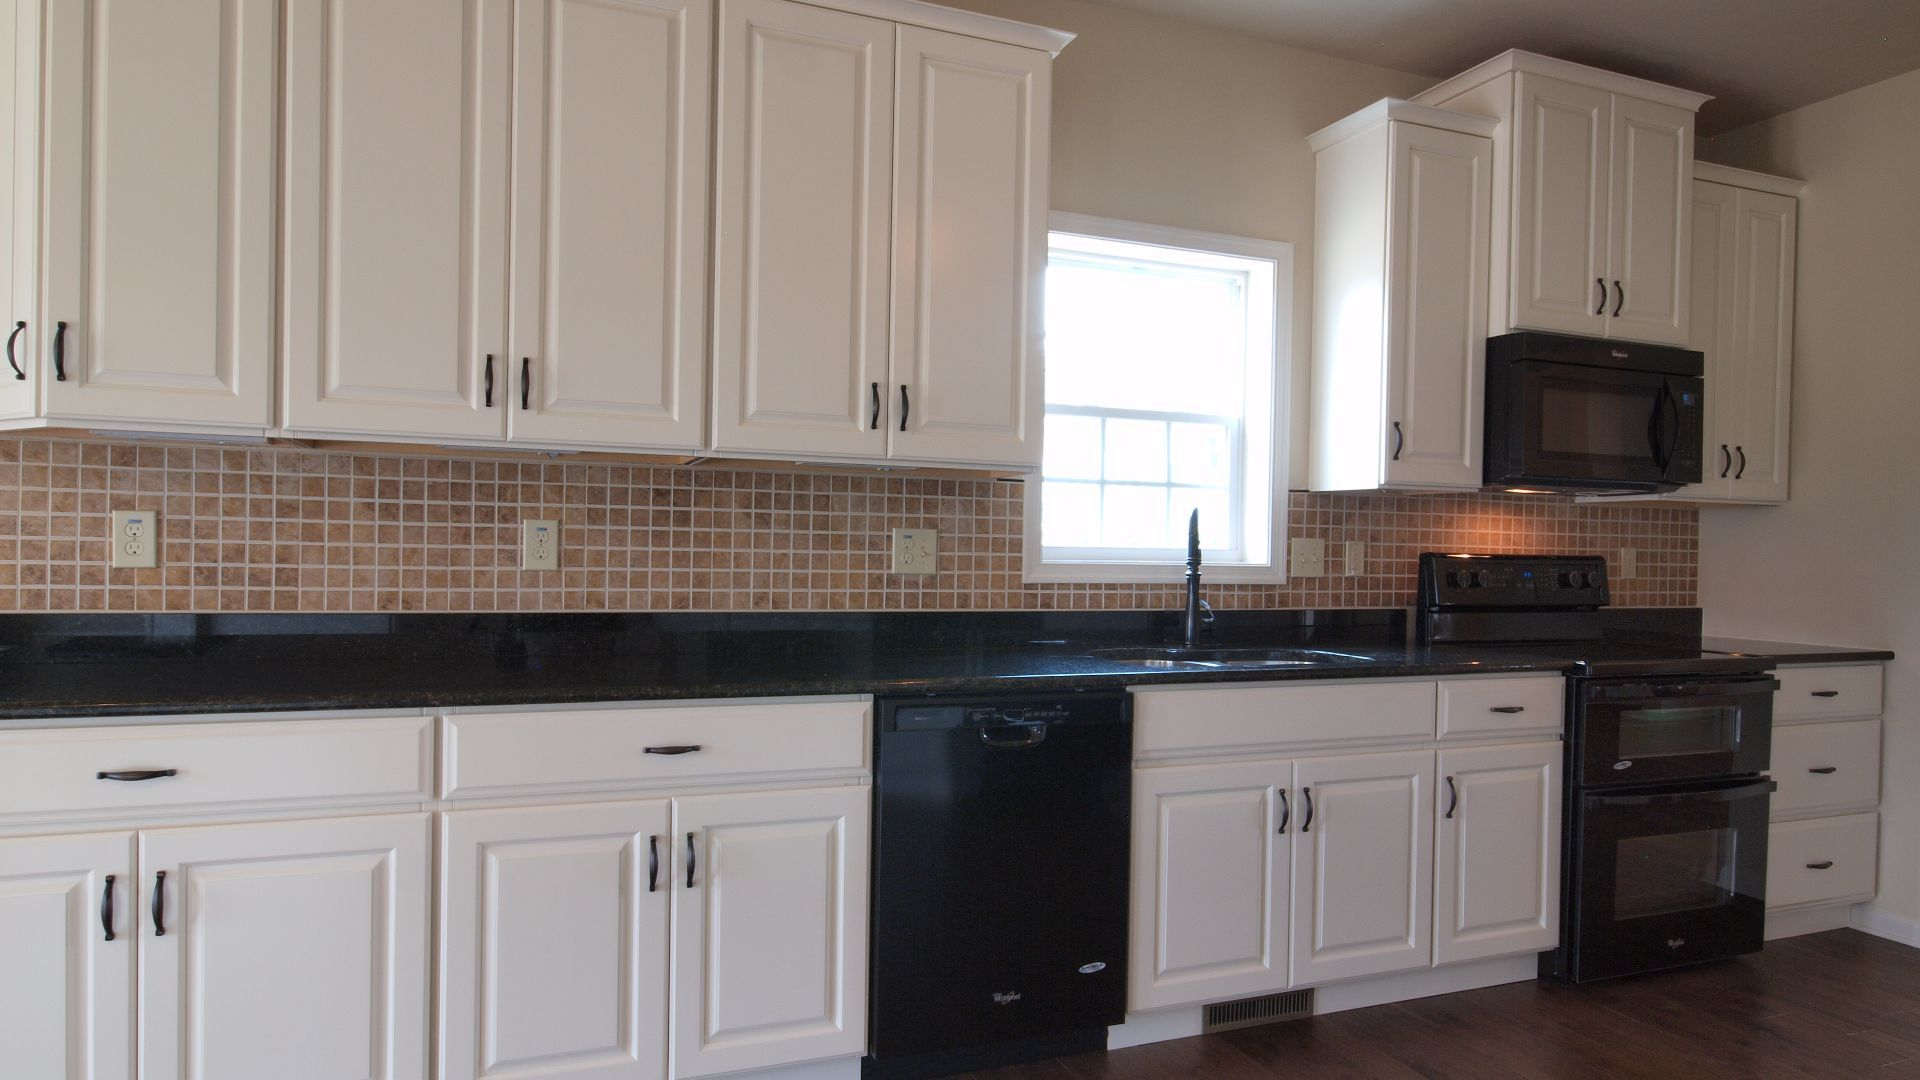 Kitchen featured in the Bayberry By S & A Homes in State College, PA